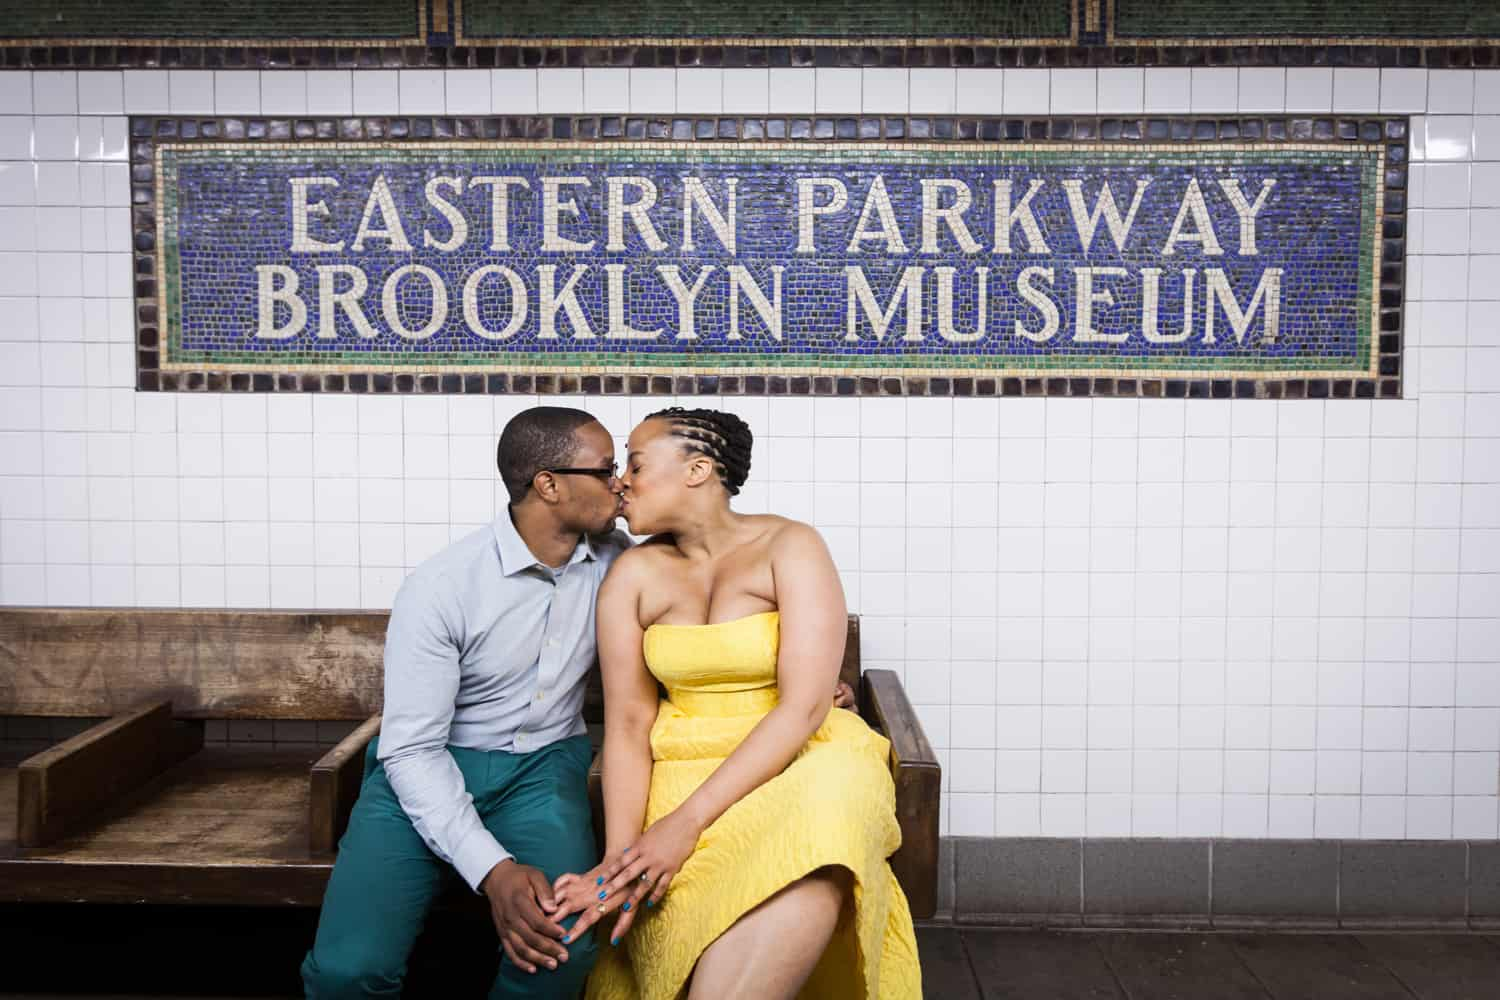 Couple sitting and kissing under Eastern Parkway Brooklyn Museum subway platform